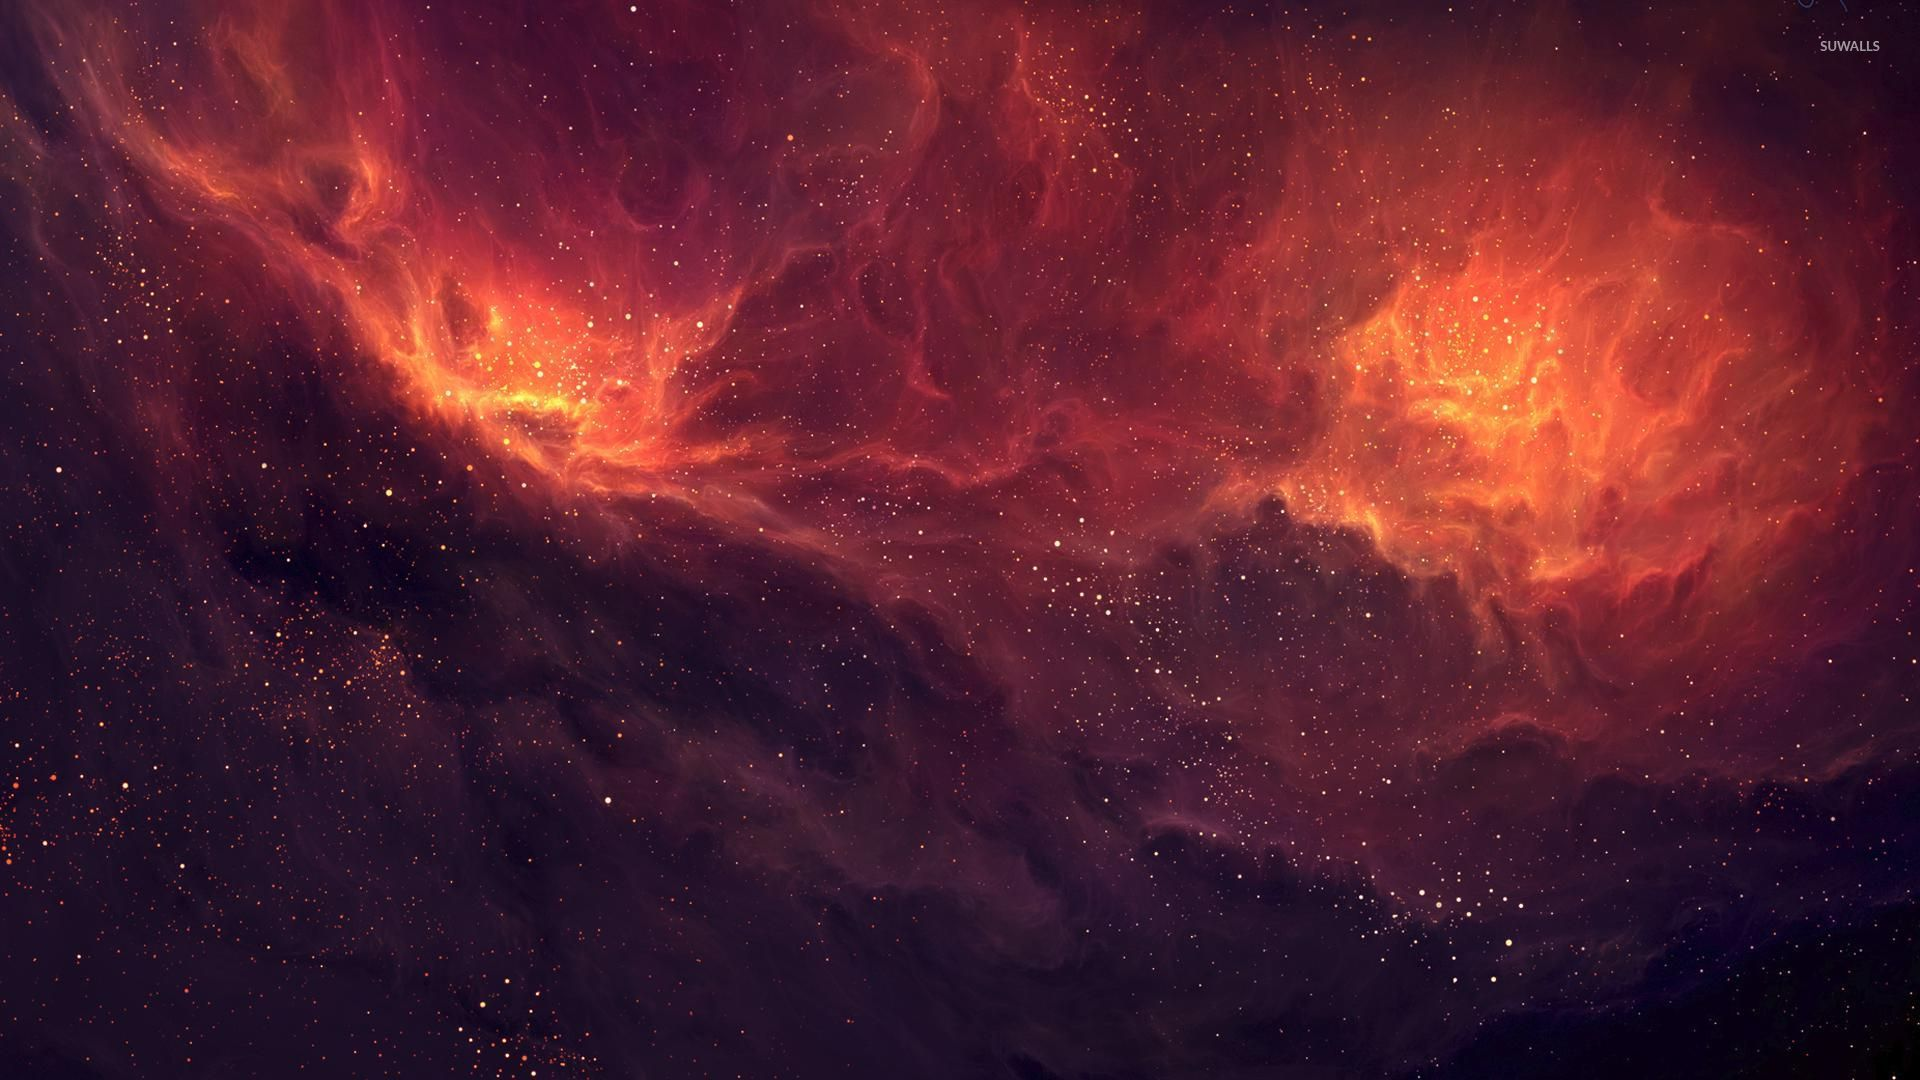 Firey Nebula Wallpaper Space 1920x1080 Jpg